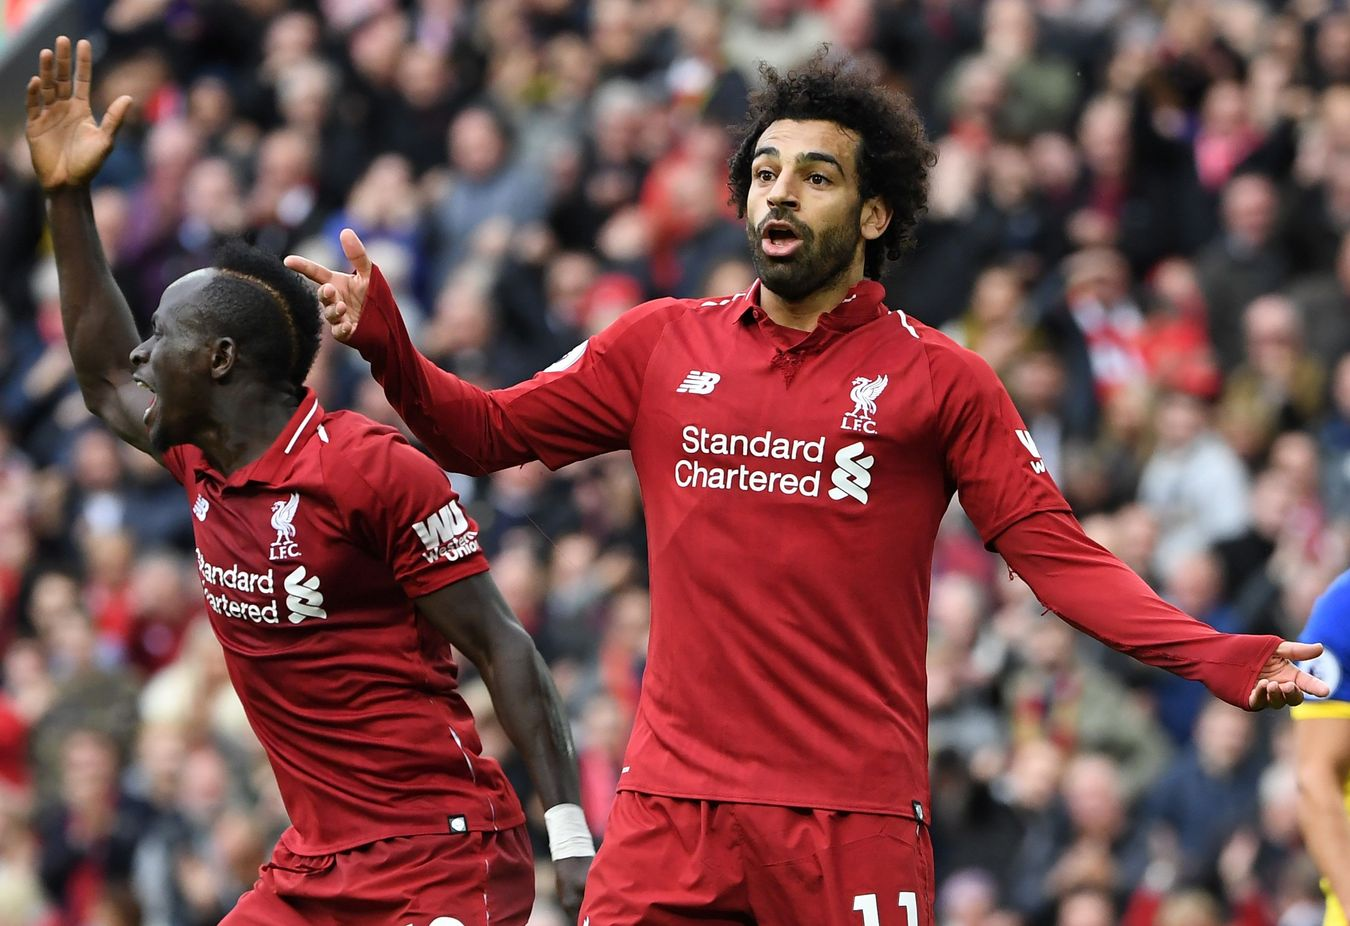 Salah and Mane, Liverpool